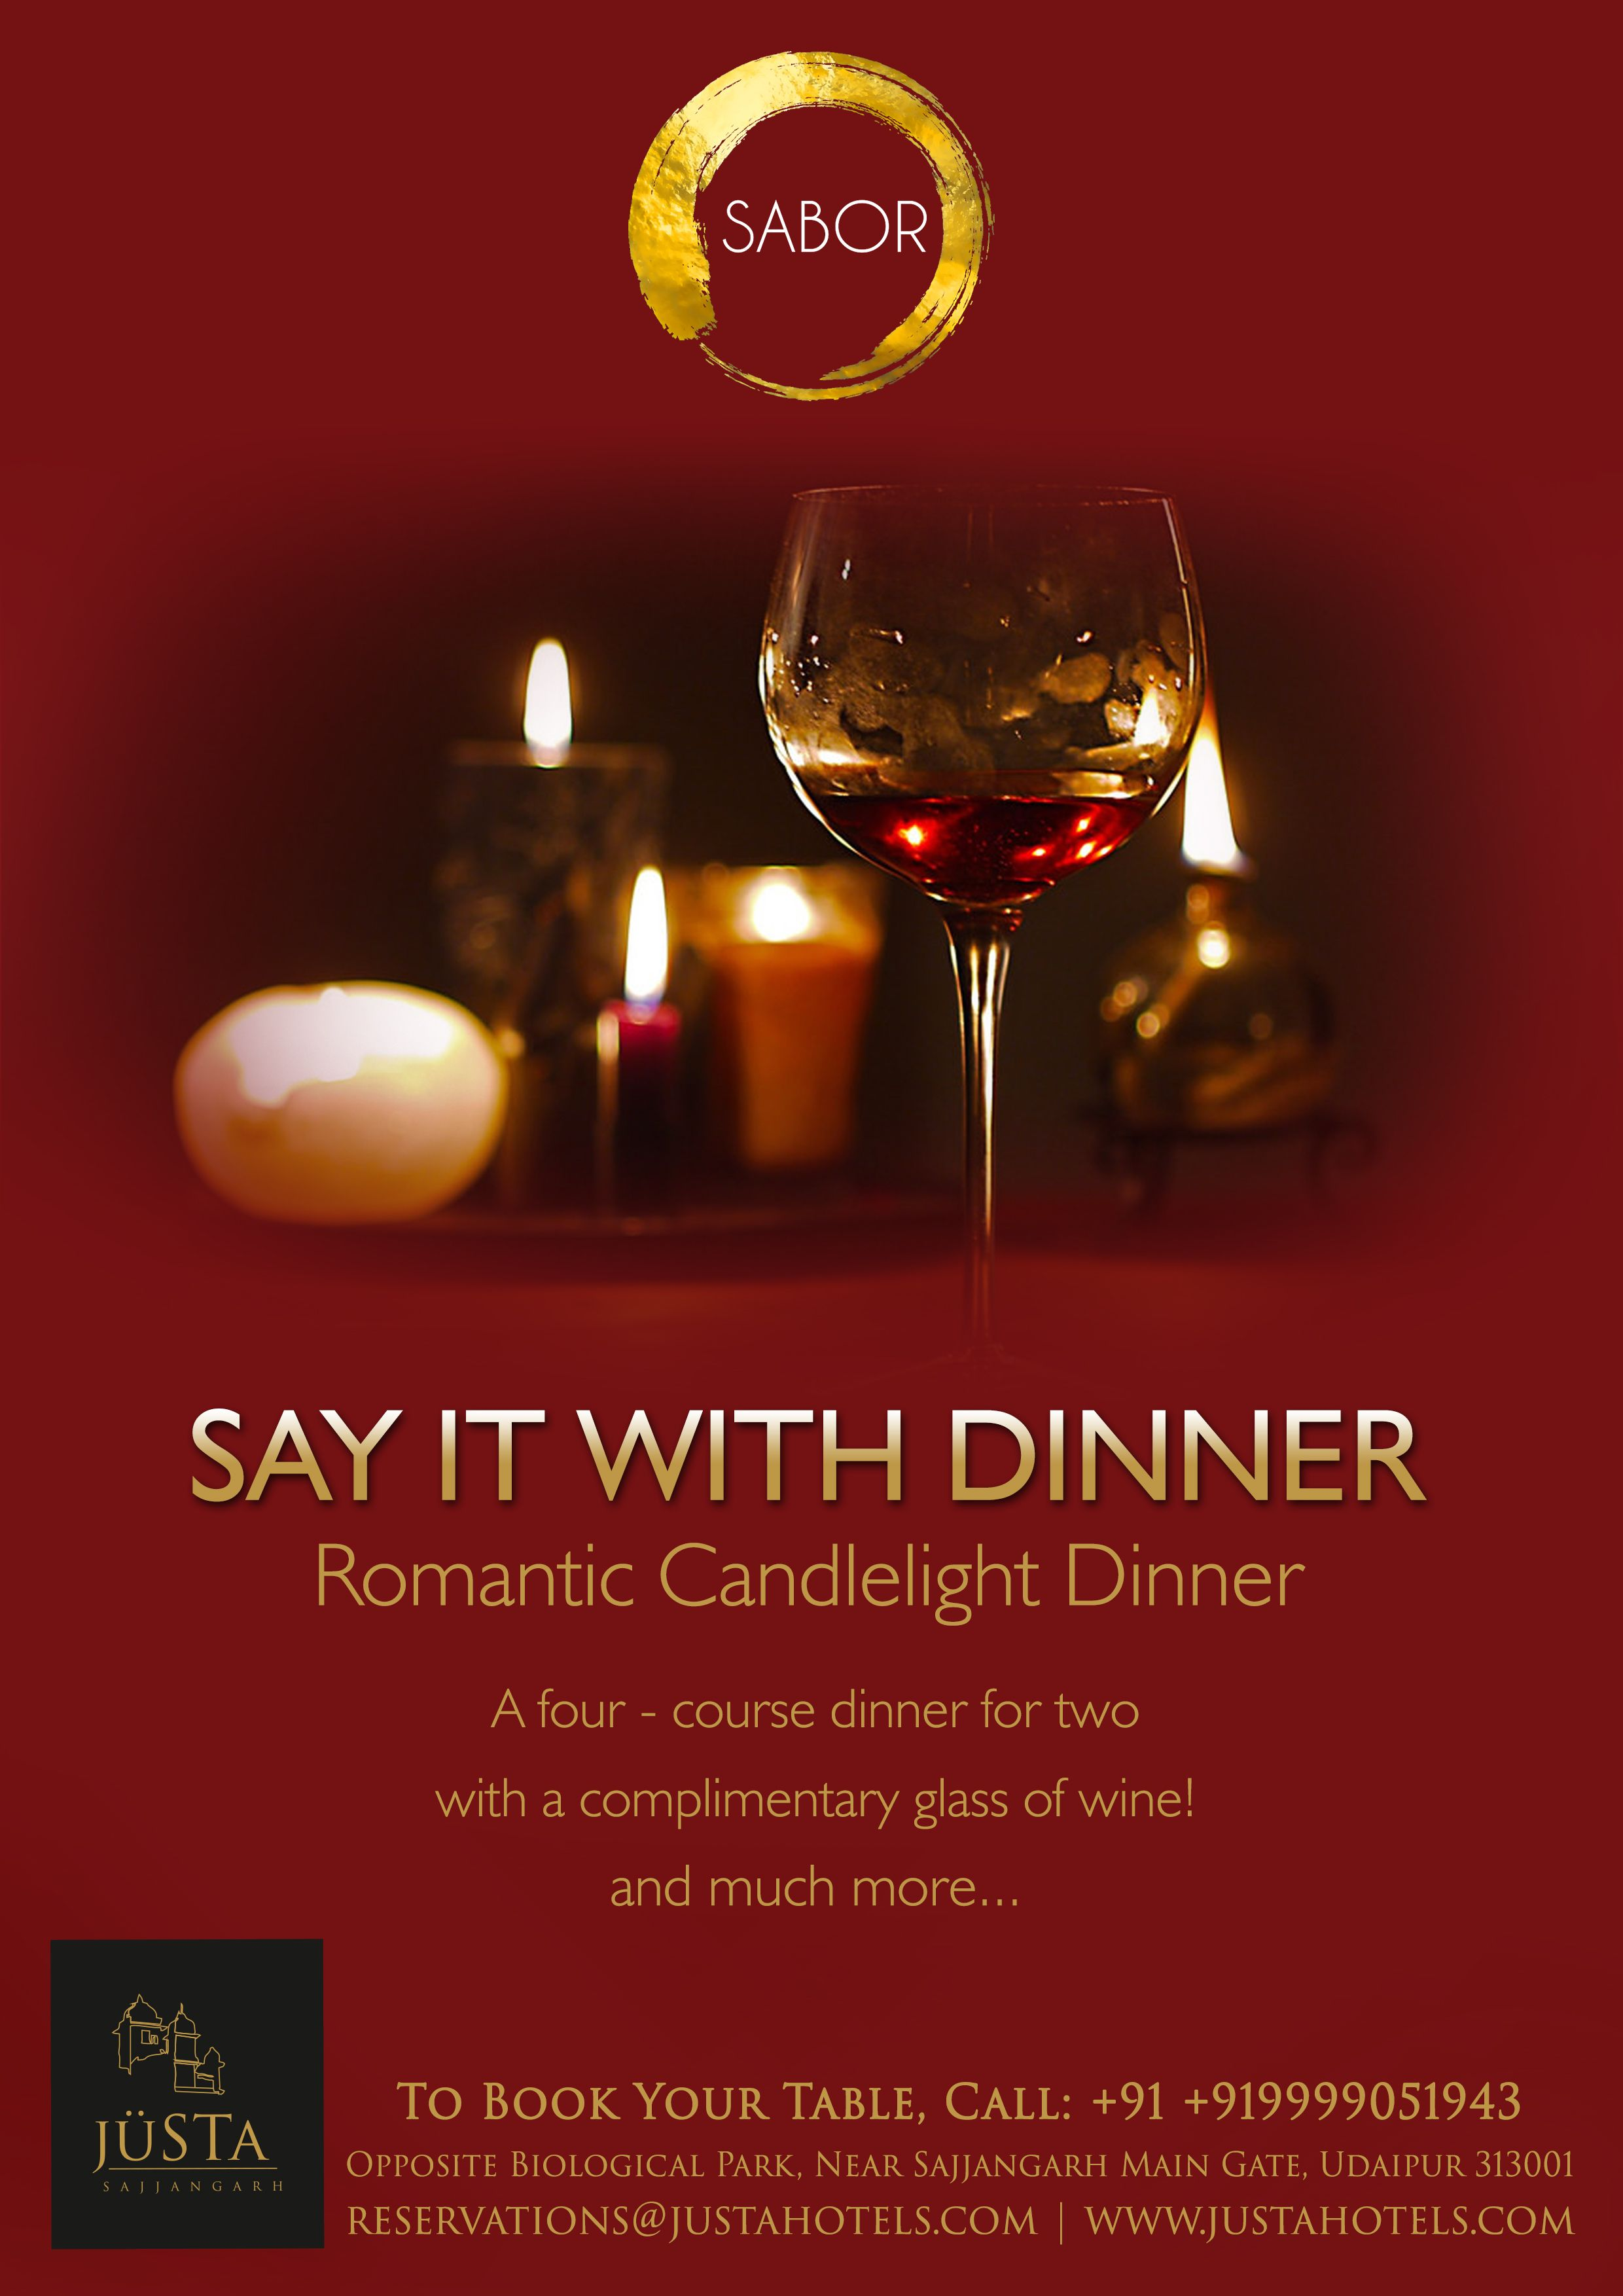 Valentines Day Dinner Flyer Candle Light Dinner Romantic Candle Light Dinner Valentine Dinner